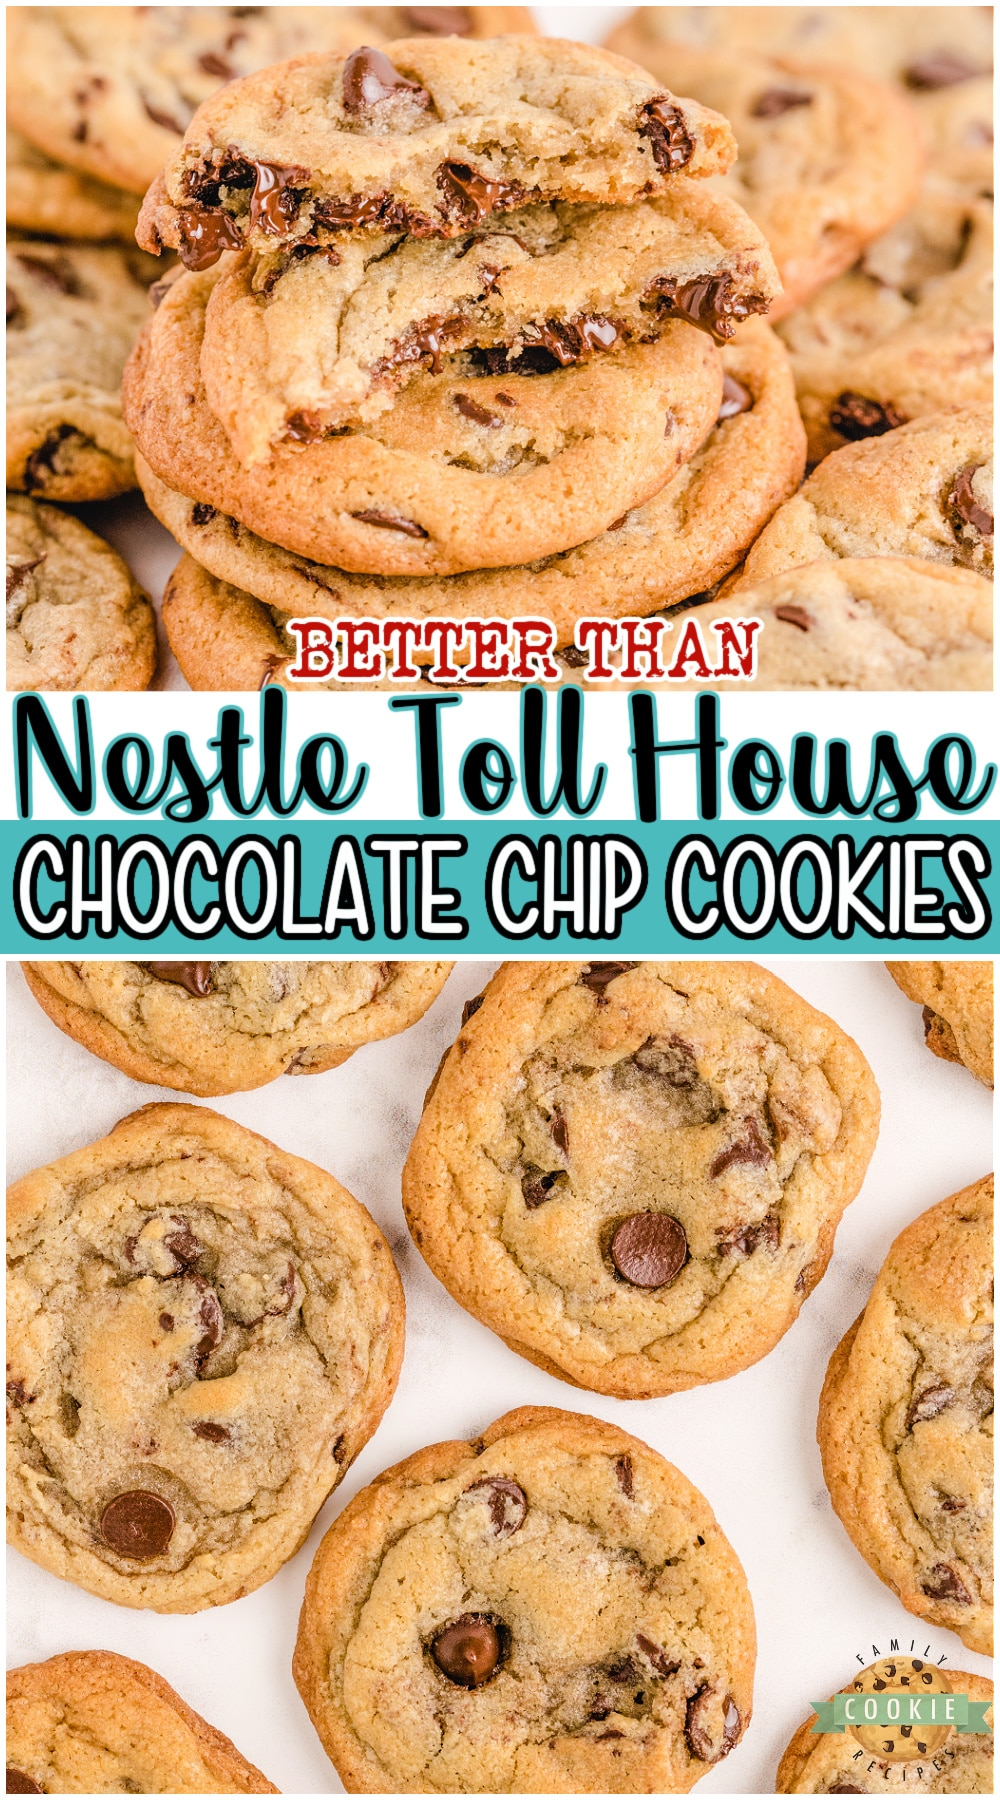 NESTLE TOLL HOUSE COOKIES recipe from the little yellow bag of chocolate chips with a few tweaks to make them even BETTER! Fantastic buttery chocolate chip cookie recipe with perfect flavor & texture. #cookies #chocolatechip #NestleTollHouse #baking #easyrecipe from FAMILY COOKIE RECIPES via @buttergirls